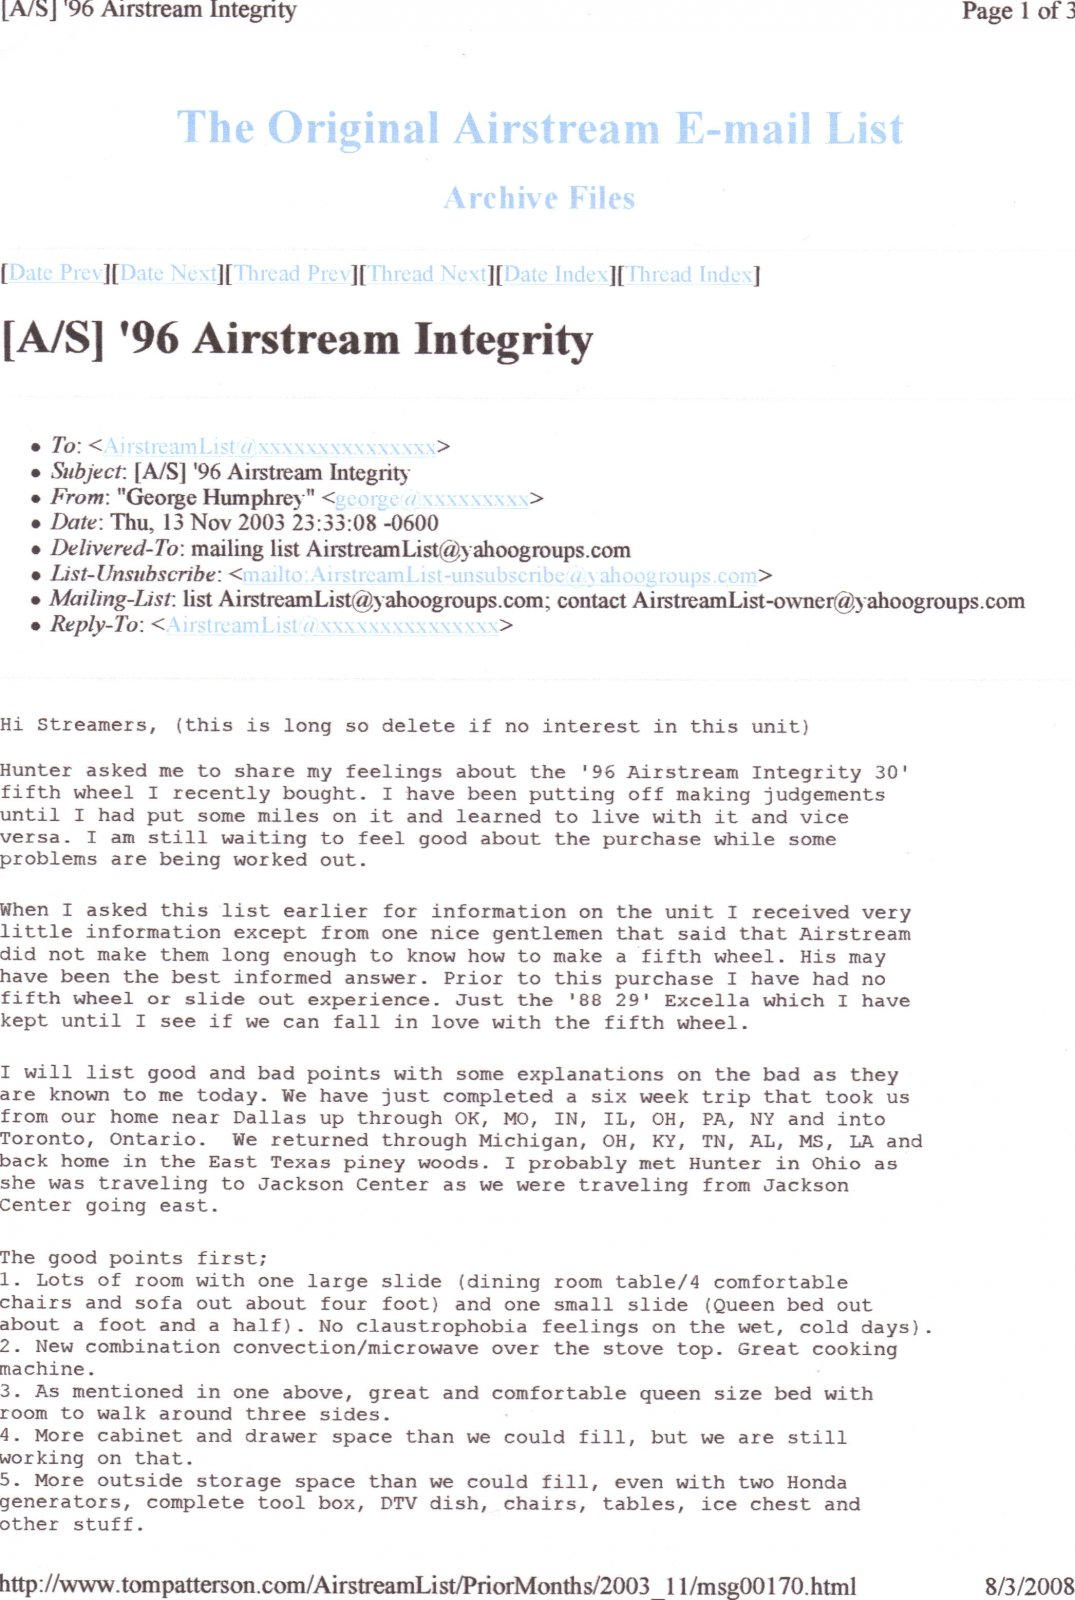 Click image for larger version  Name:1996 INTEGRITY P1.jpg Views:322 Size:264.4 KB ID:65003